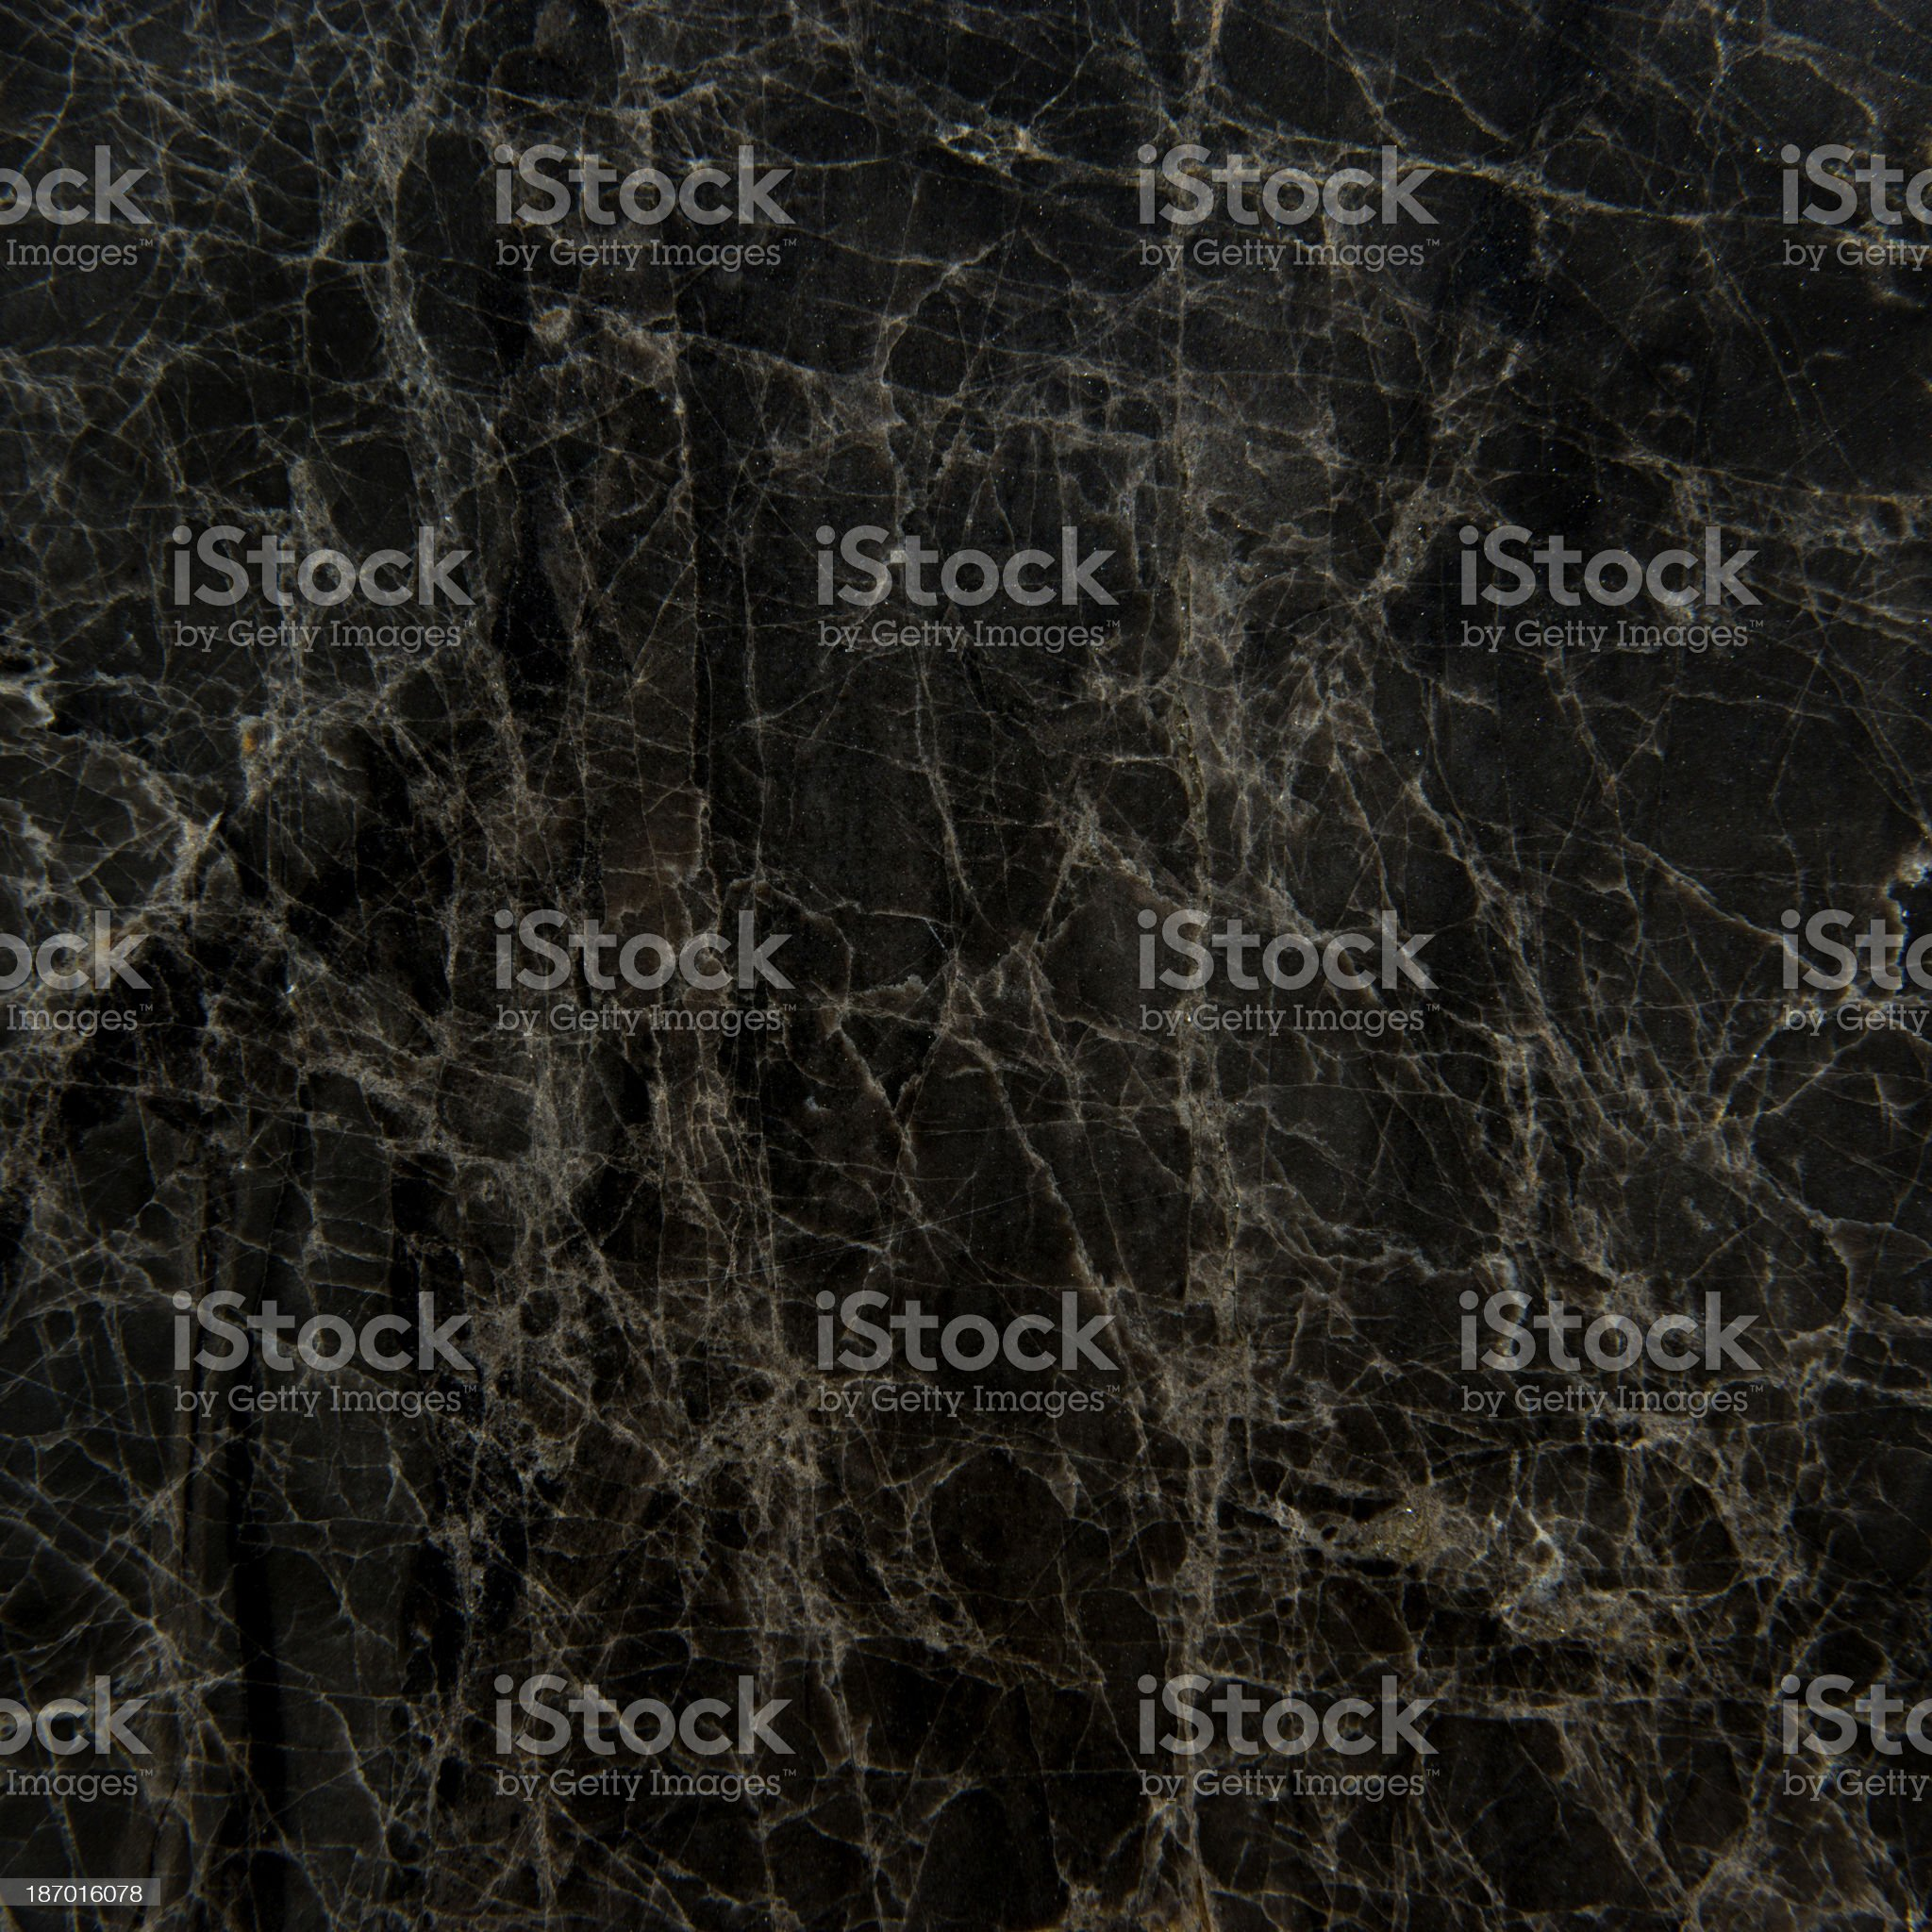 Black Marble Abstract Texture Background royalty-free stock photo